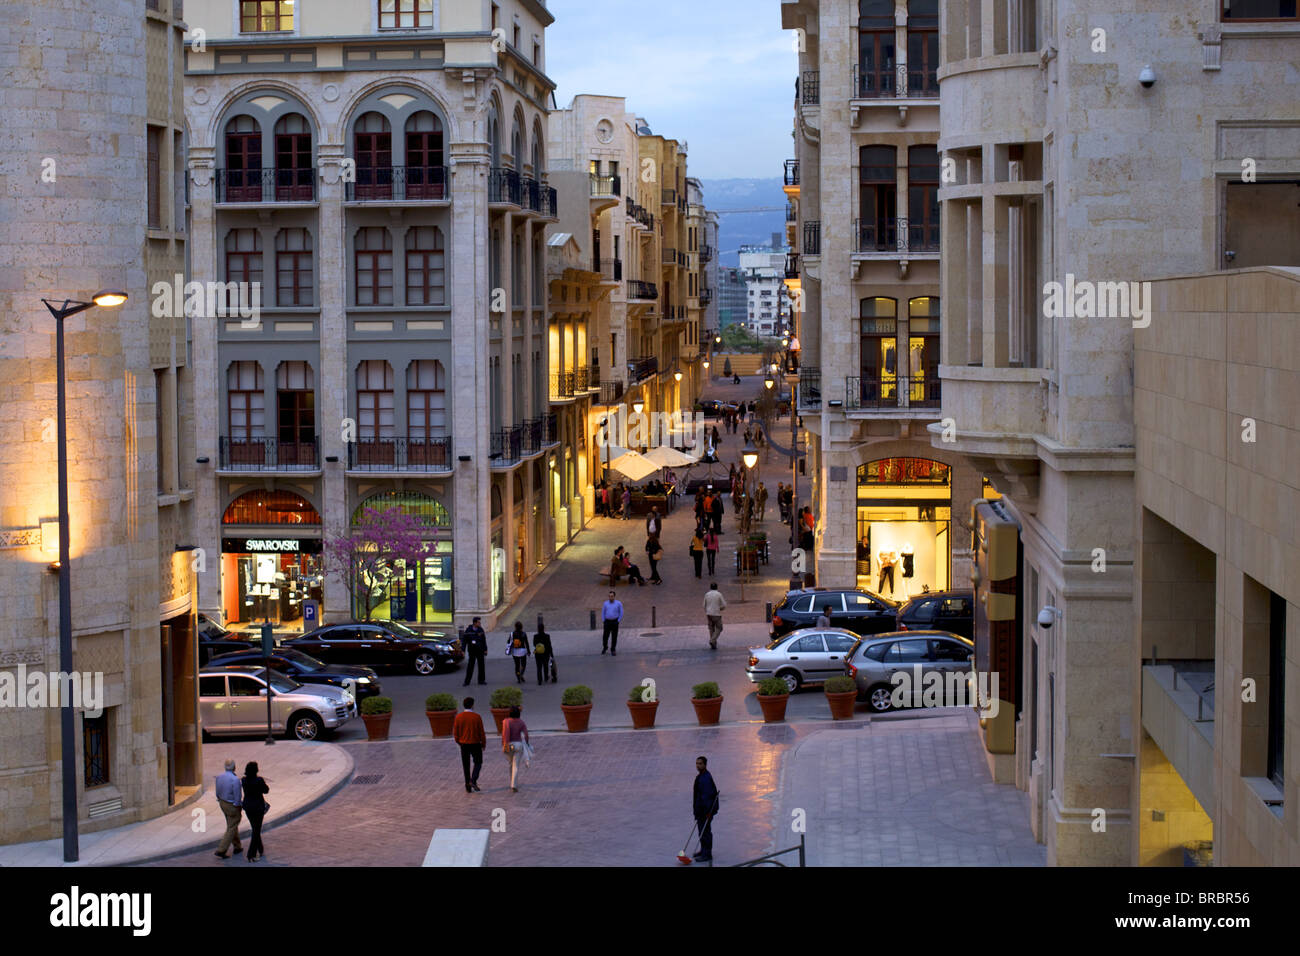 Solidere quarter, near the Place des Martyrs, Beirut, Lebanon, Middle East - Stock Image